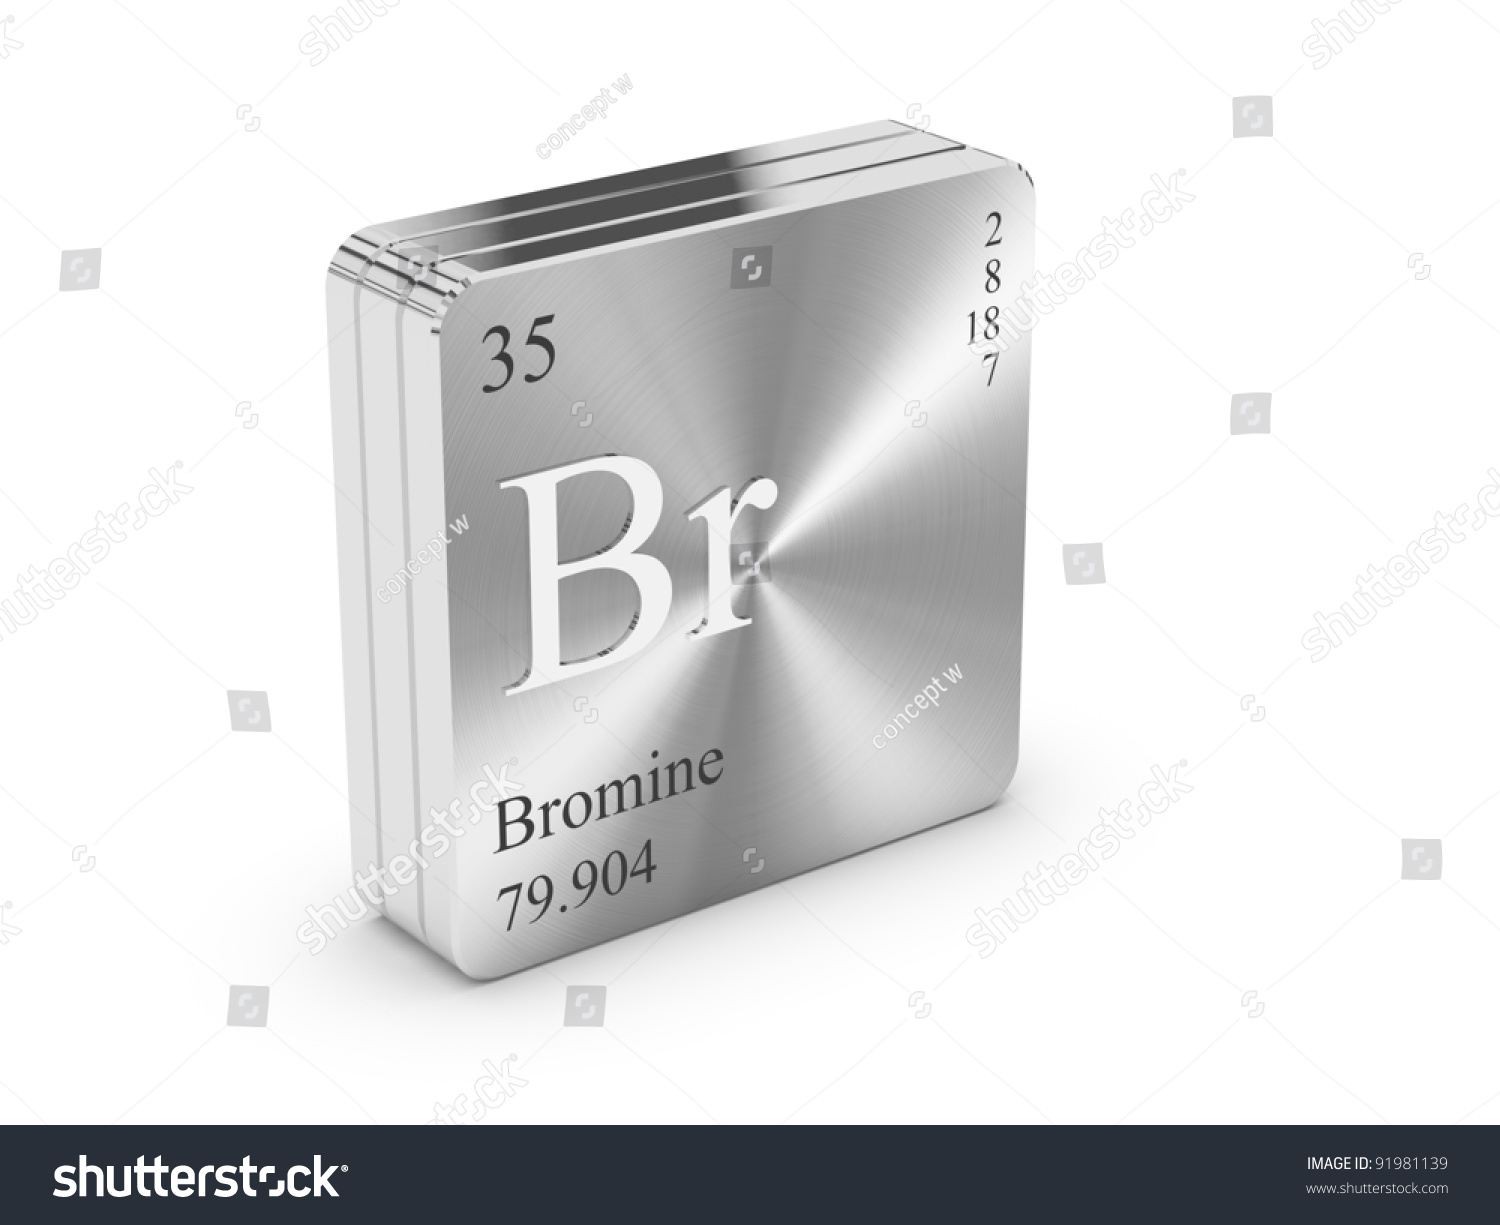 Steel symbol periodic table images periodic table images steel symbol periodic table gallery periodic table images bromine element periodic table on metal stock illustration gamestrikefo Gallery